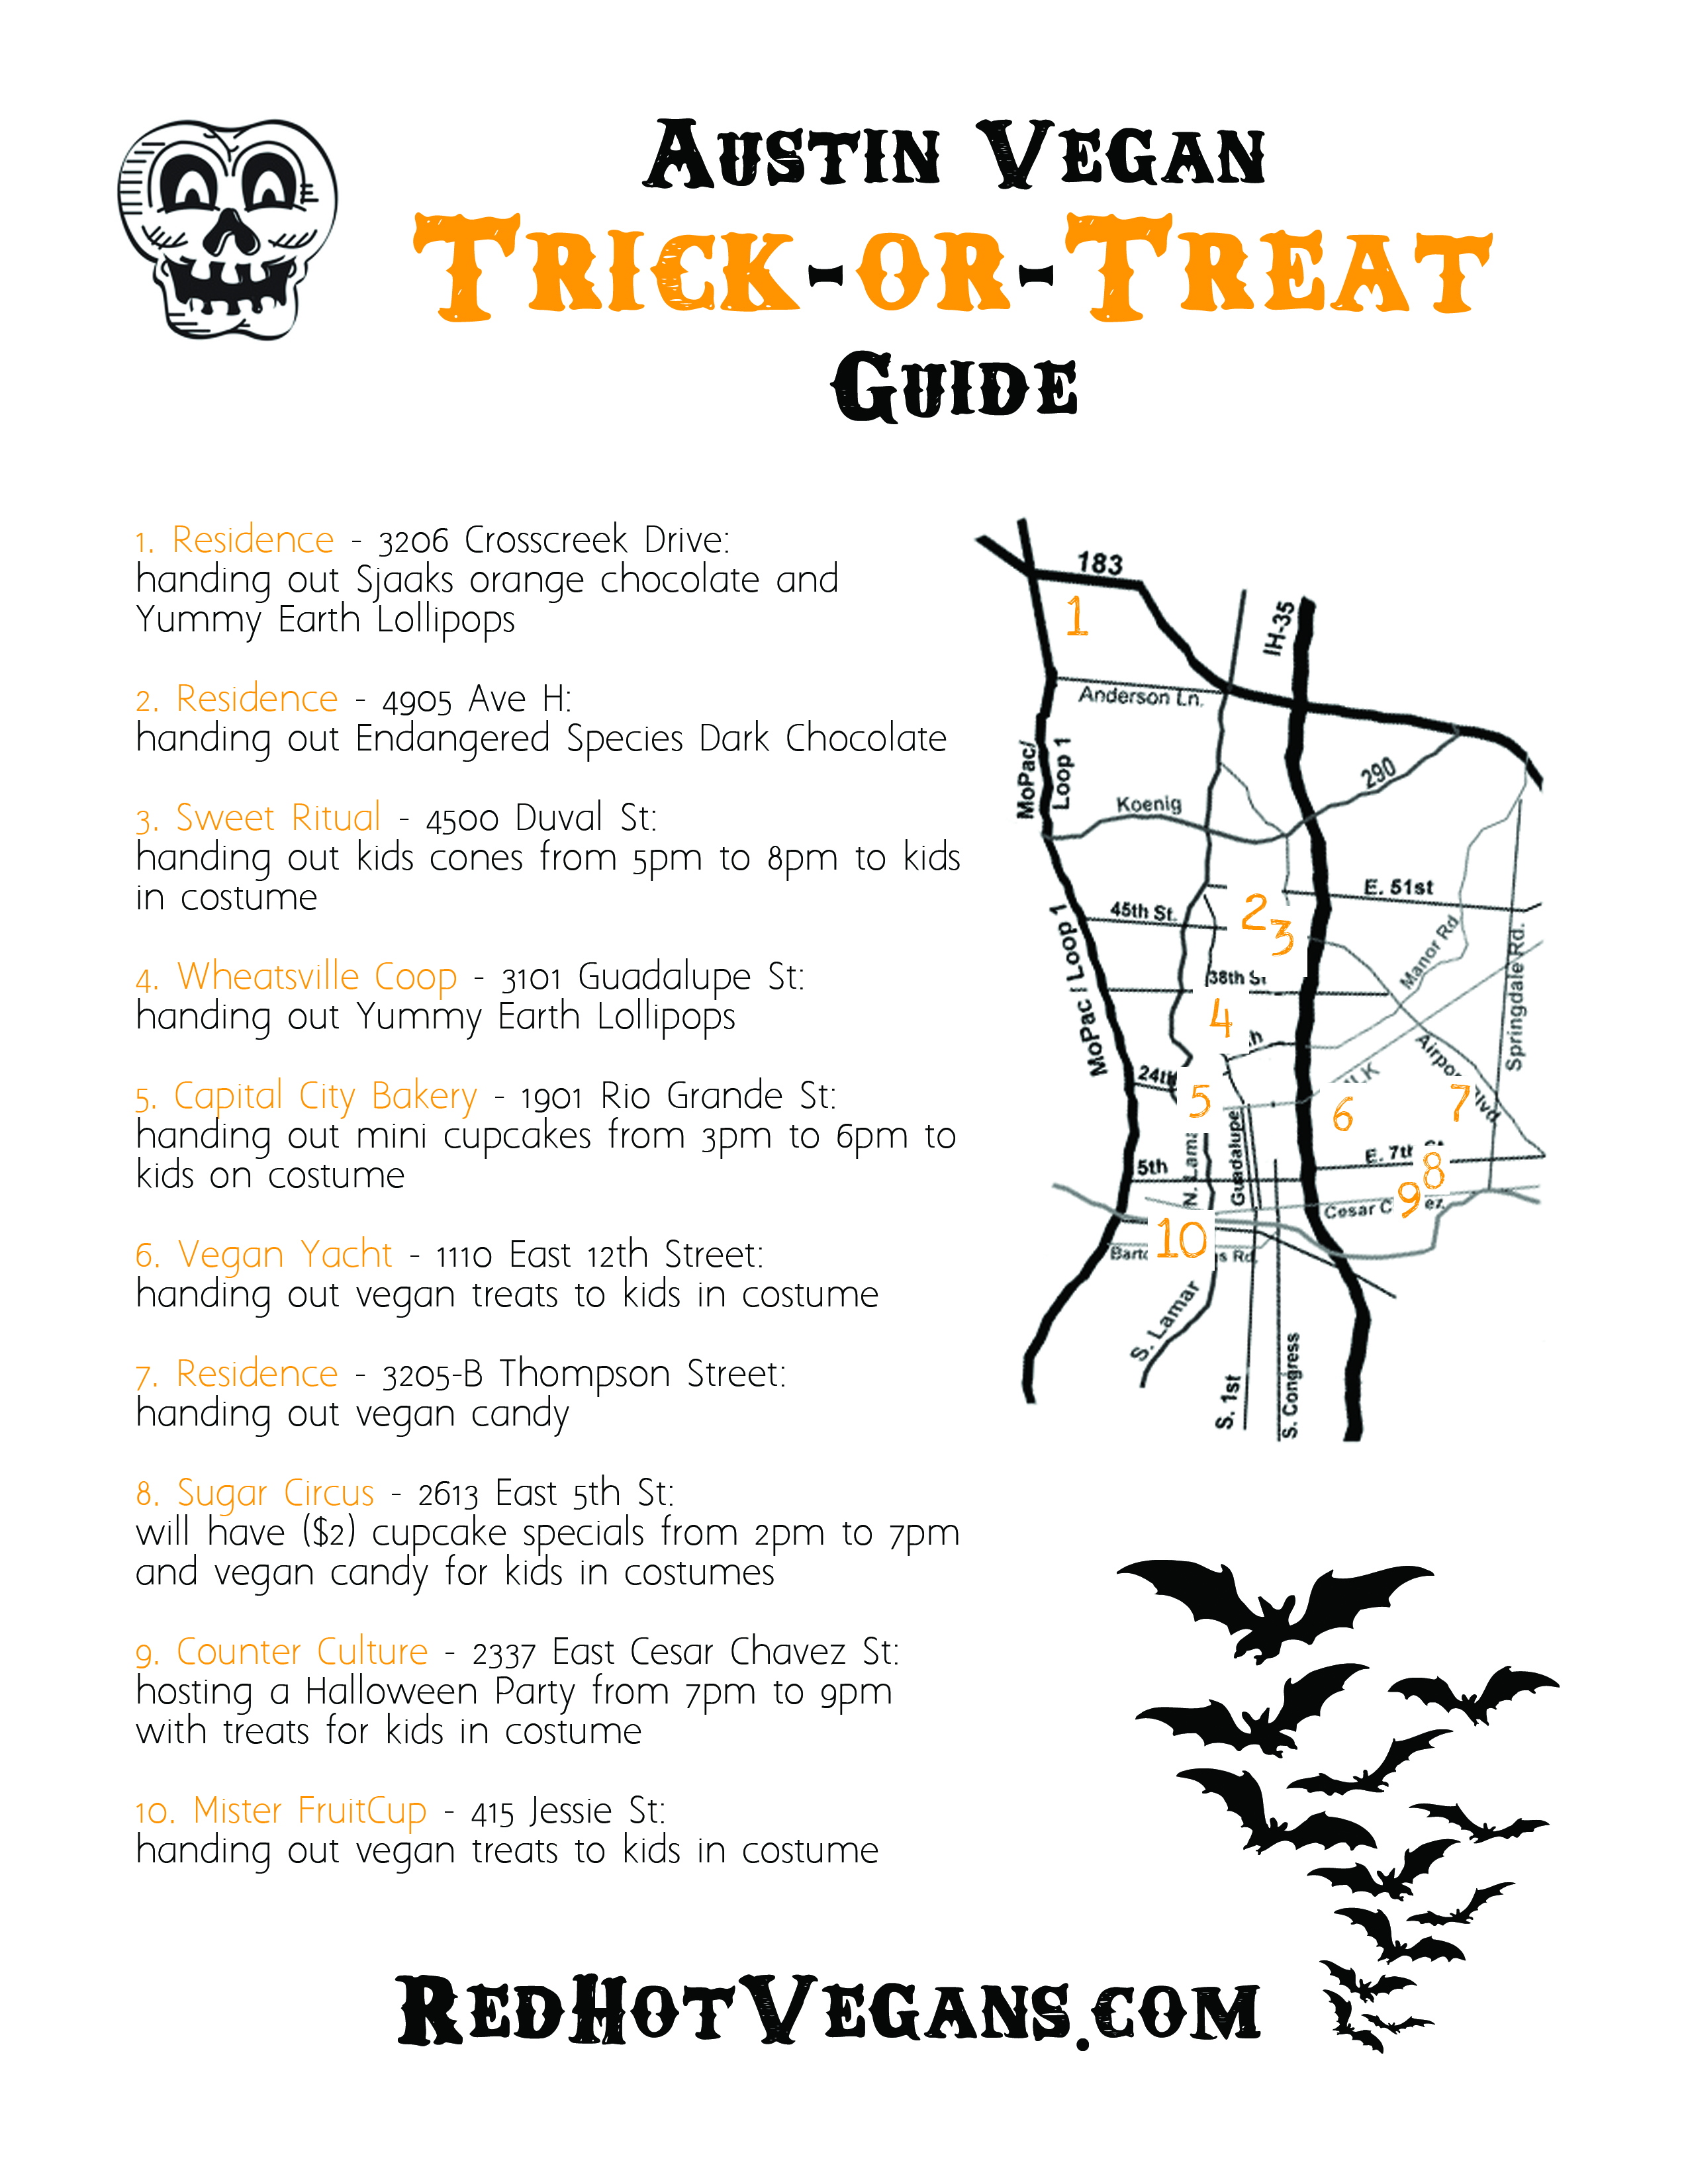 Austin Vegan Trick-or-Treat Guide